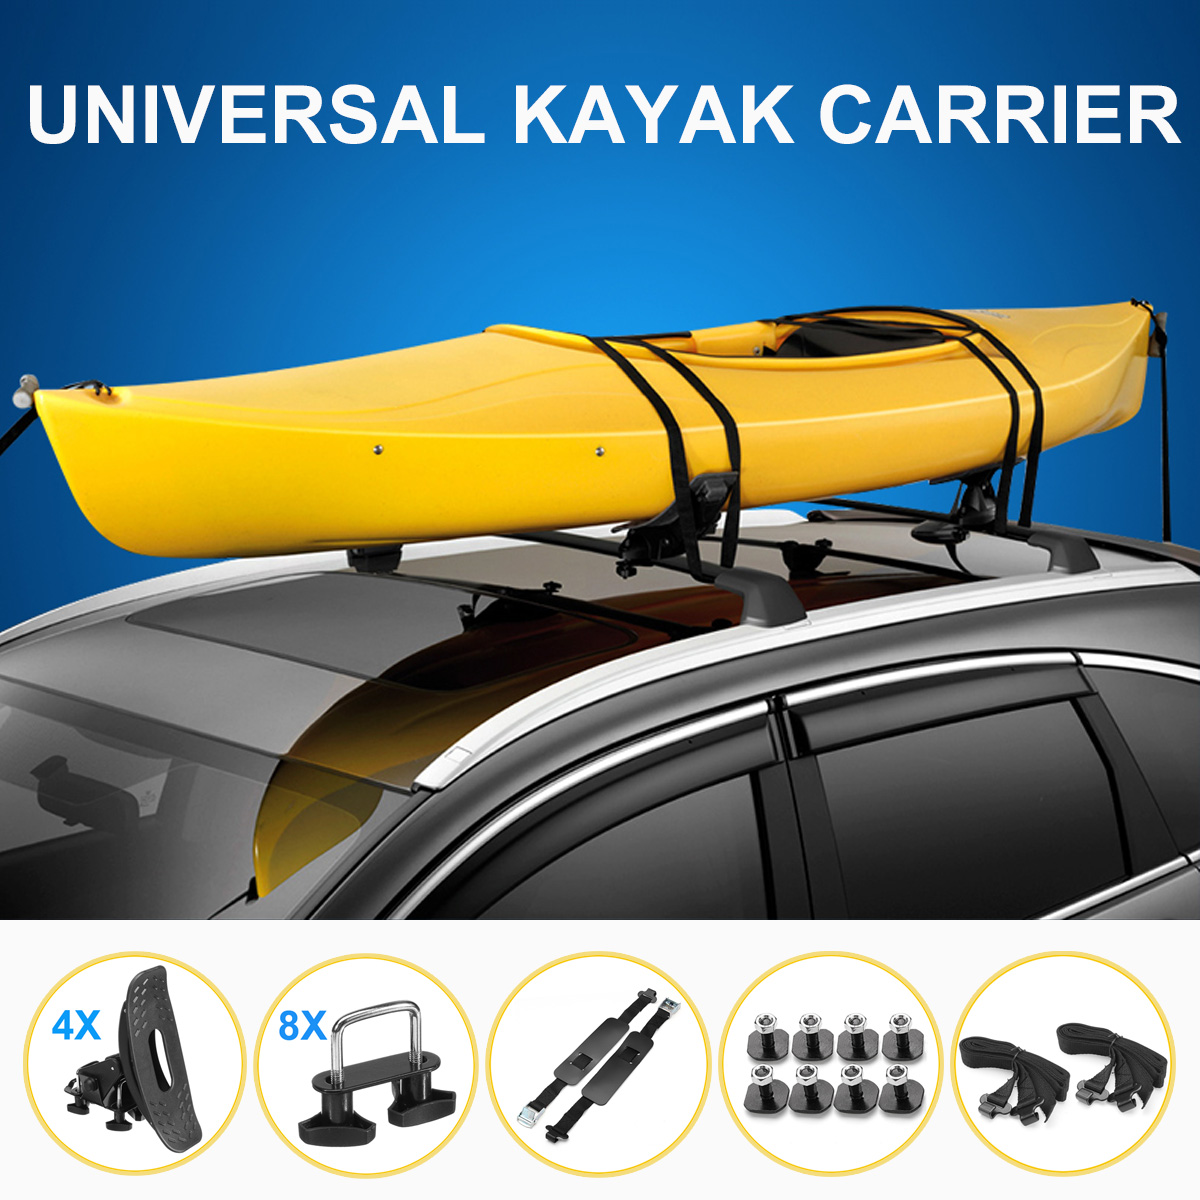 Universal Kayak Rack Holder Kayak Carrier Saddle Watercraft Roof Rack Arm Canoe Boat Car roof Rack Kayak AccessoriesUniversal Kayak Rack Holder Kayak Carrier Saddle Watercraft Roof Rack Arm Canoe Boat Car roof Rack Kayak Accessories